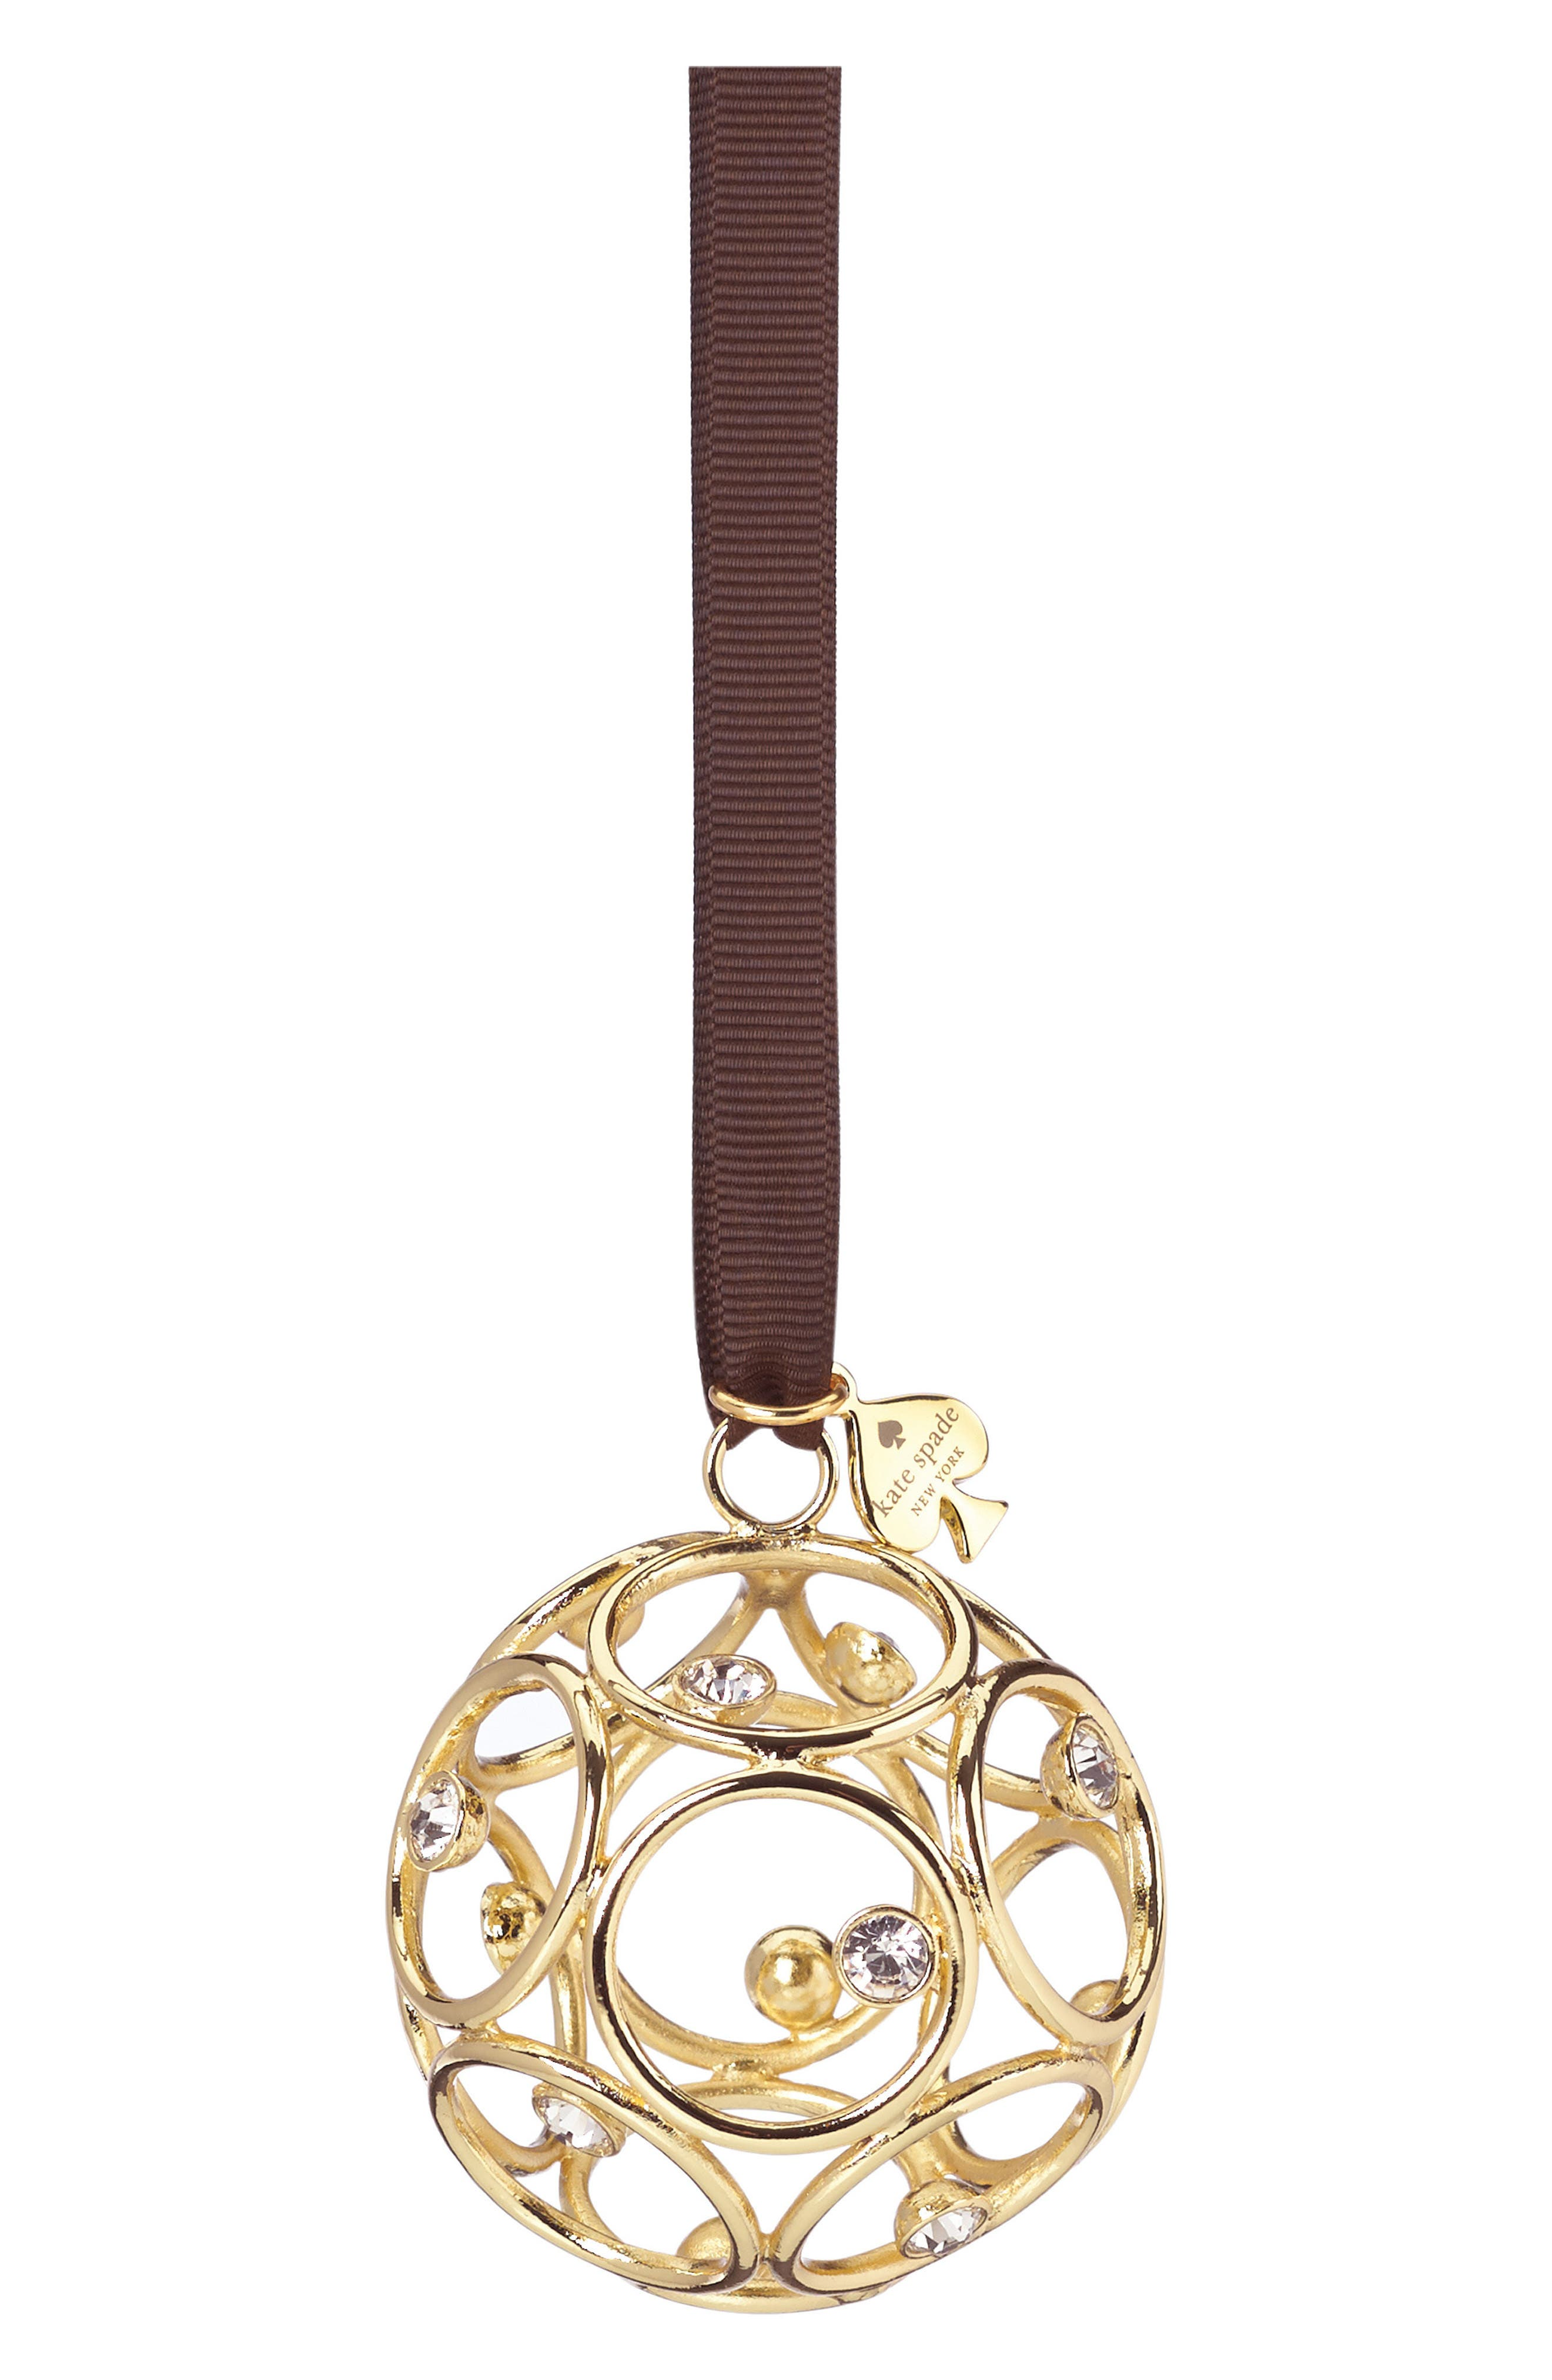 2017 annual ornament,                         Main,                         color, Bejeweled